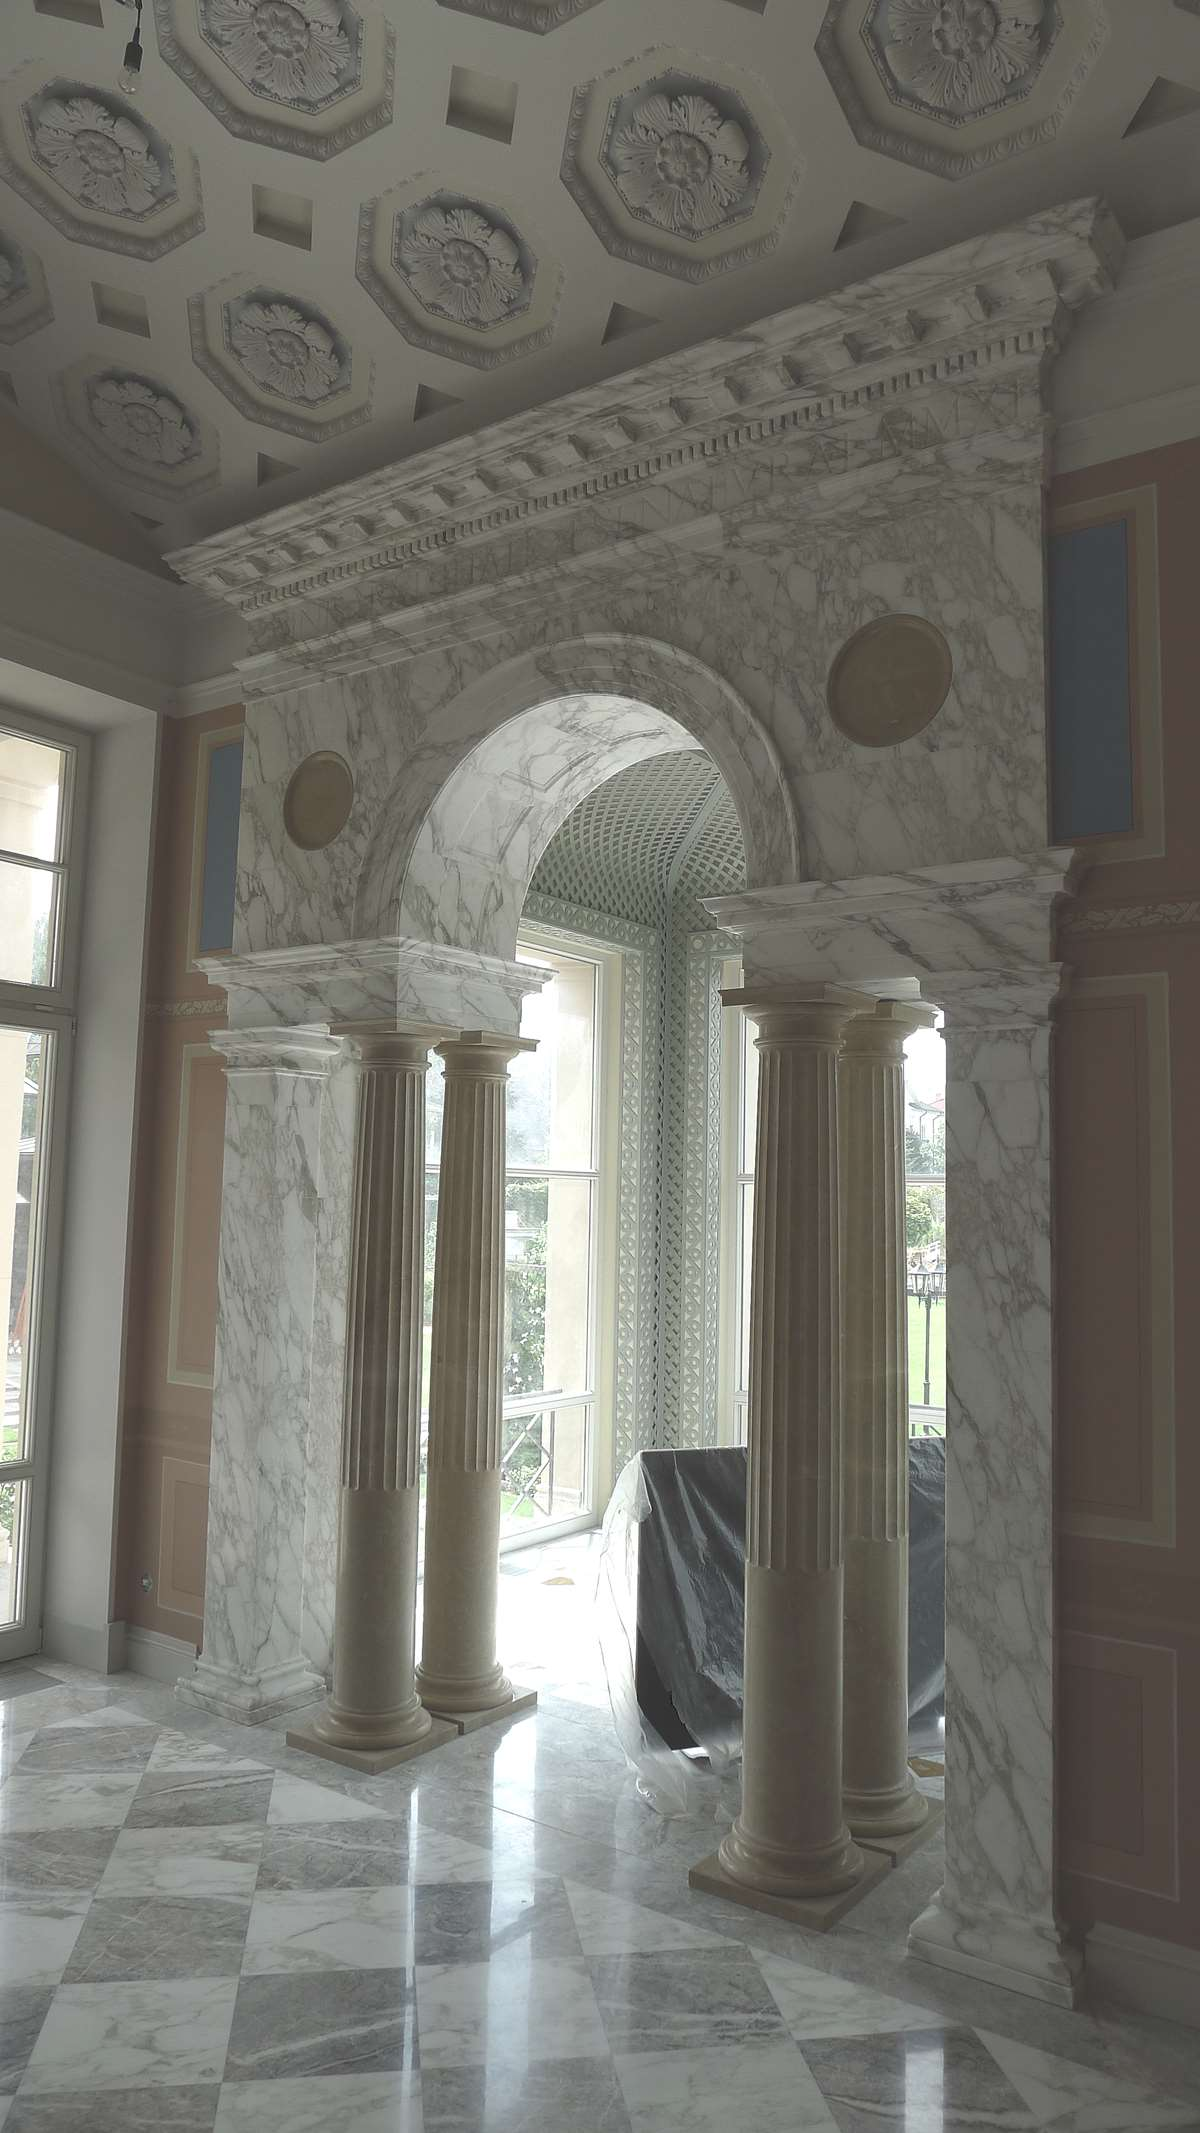 COMPLEX PROJECTS OF NATURAL STONE